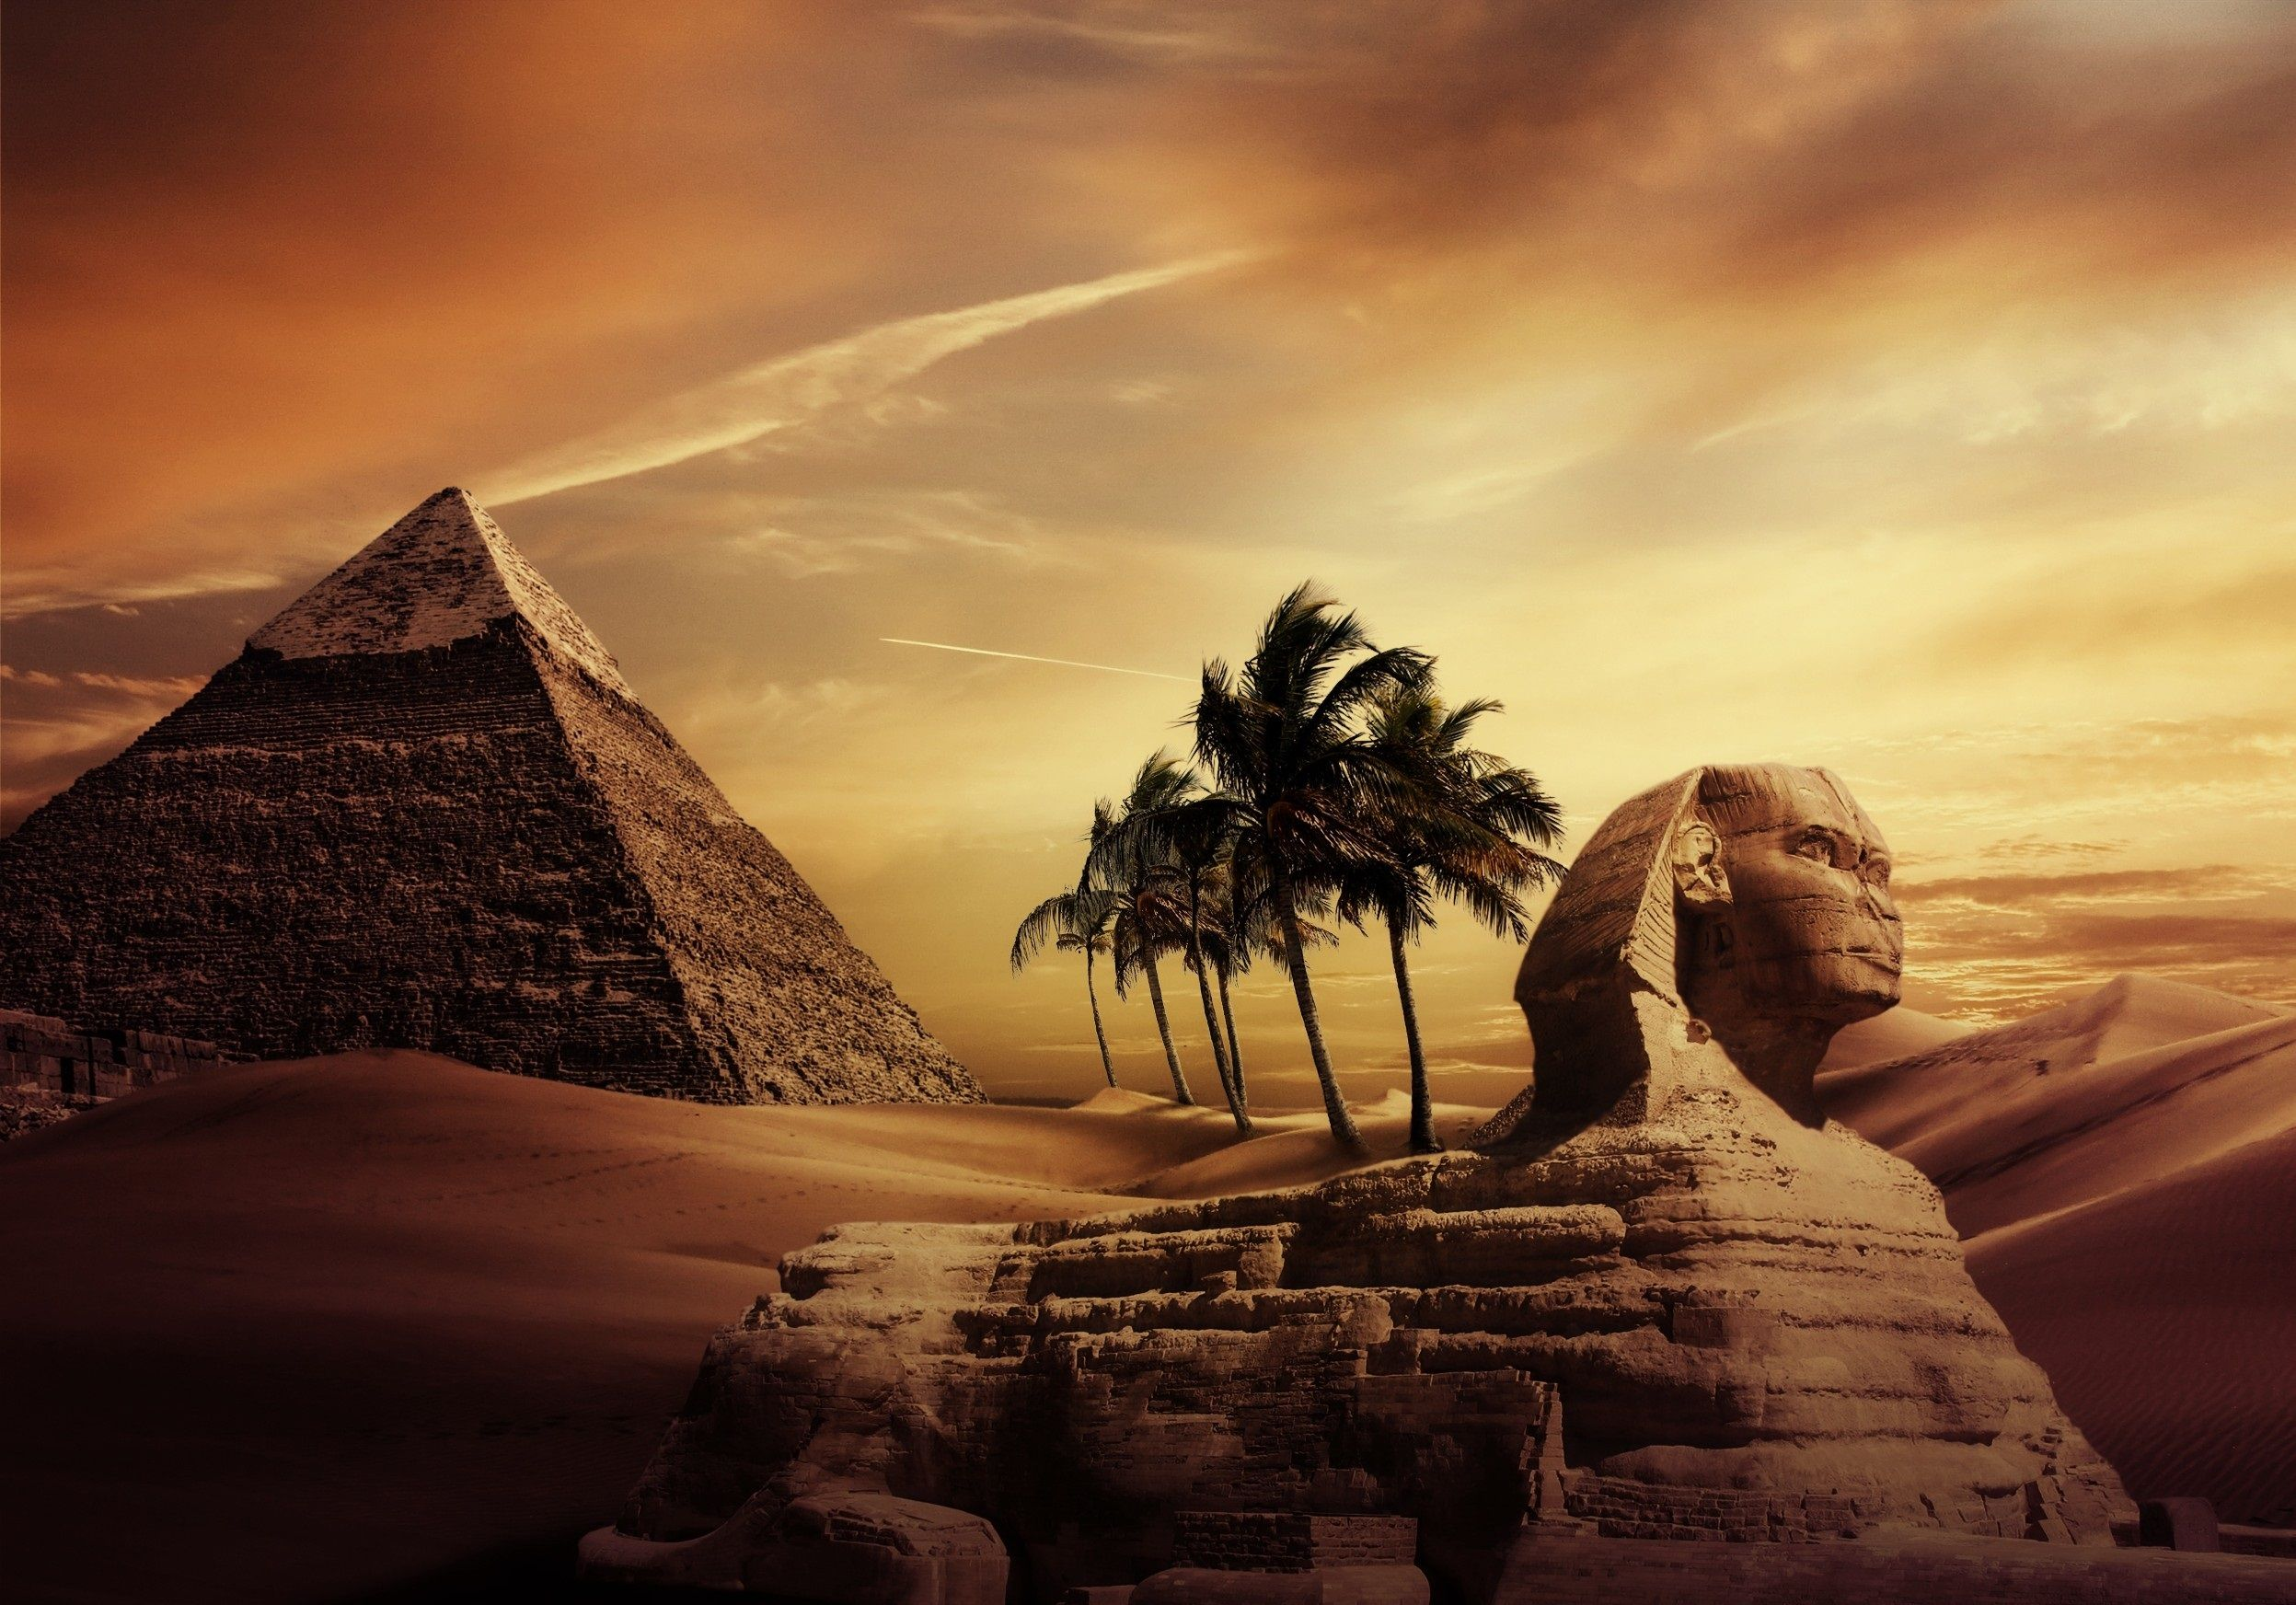 Who Built The Great Sphinx Of Egypt 800 000 Years Ago A Look Inside Pre Pharaonic Egypt Pyramids Egypt Egypt Ancient Egypt Art